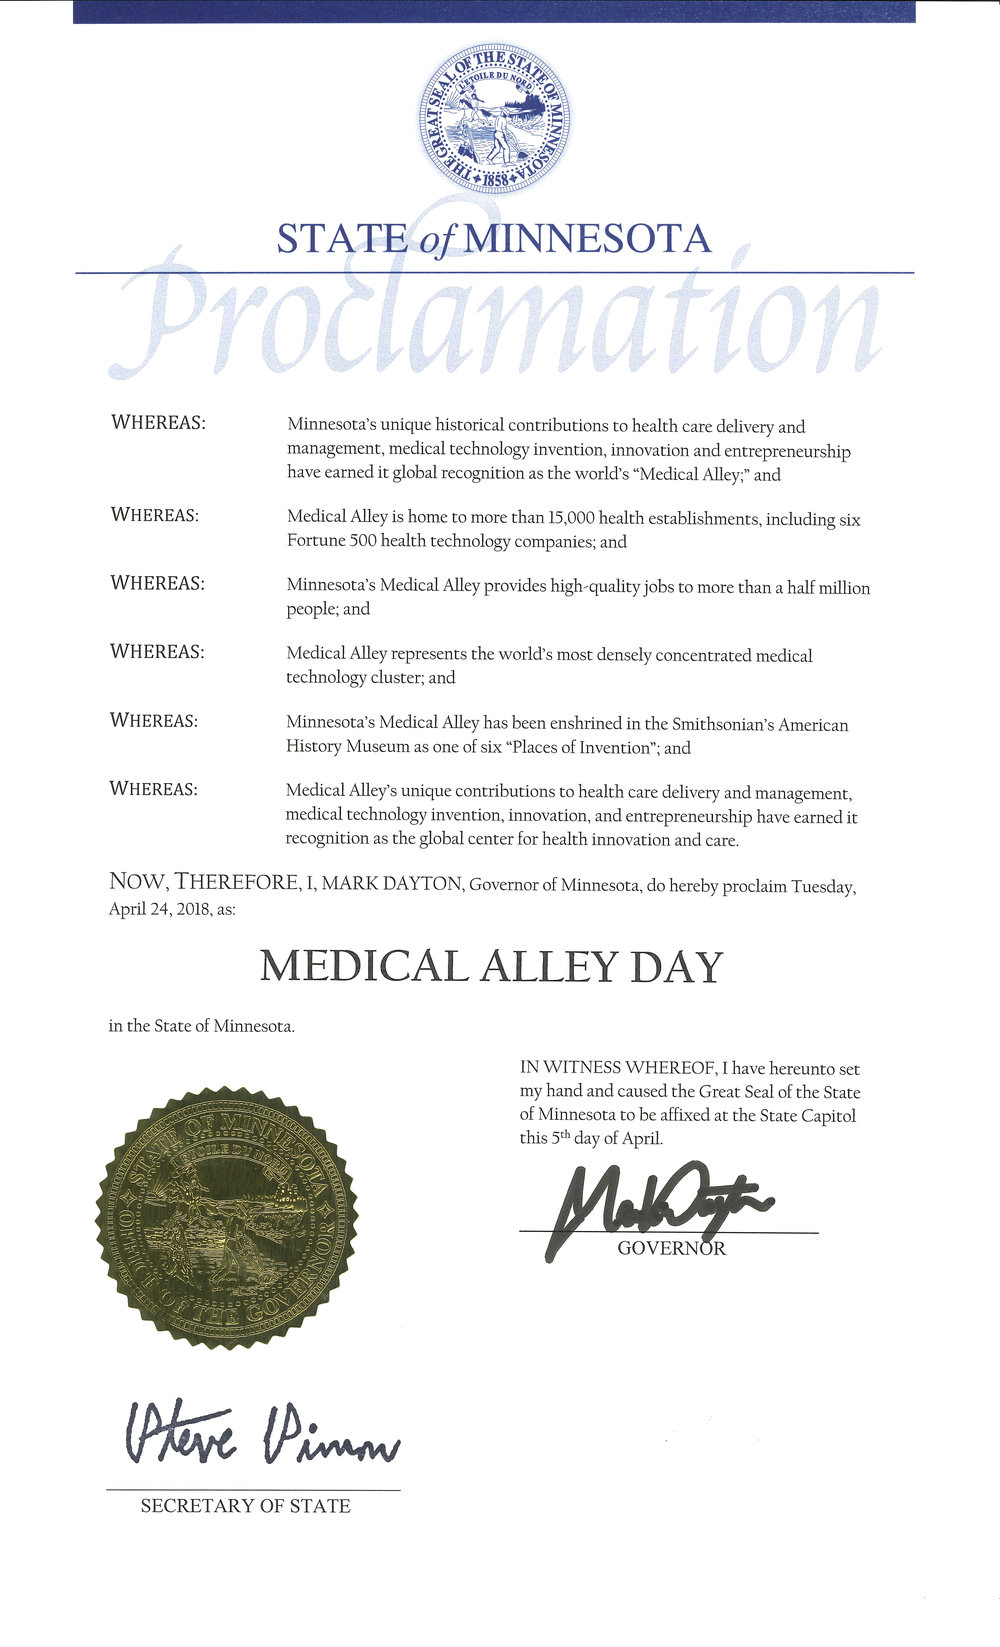 2018_04_24_Medical Alley Day.jpg